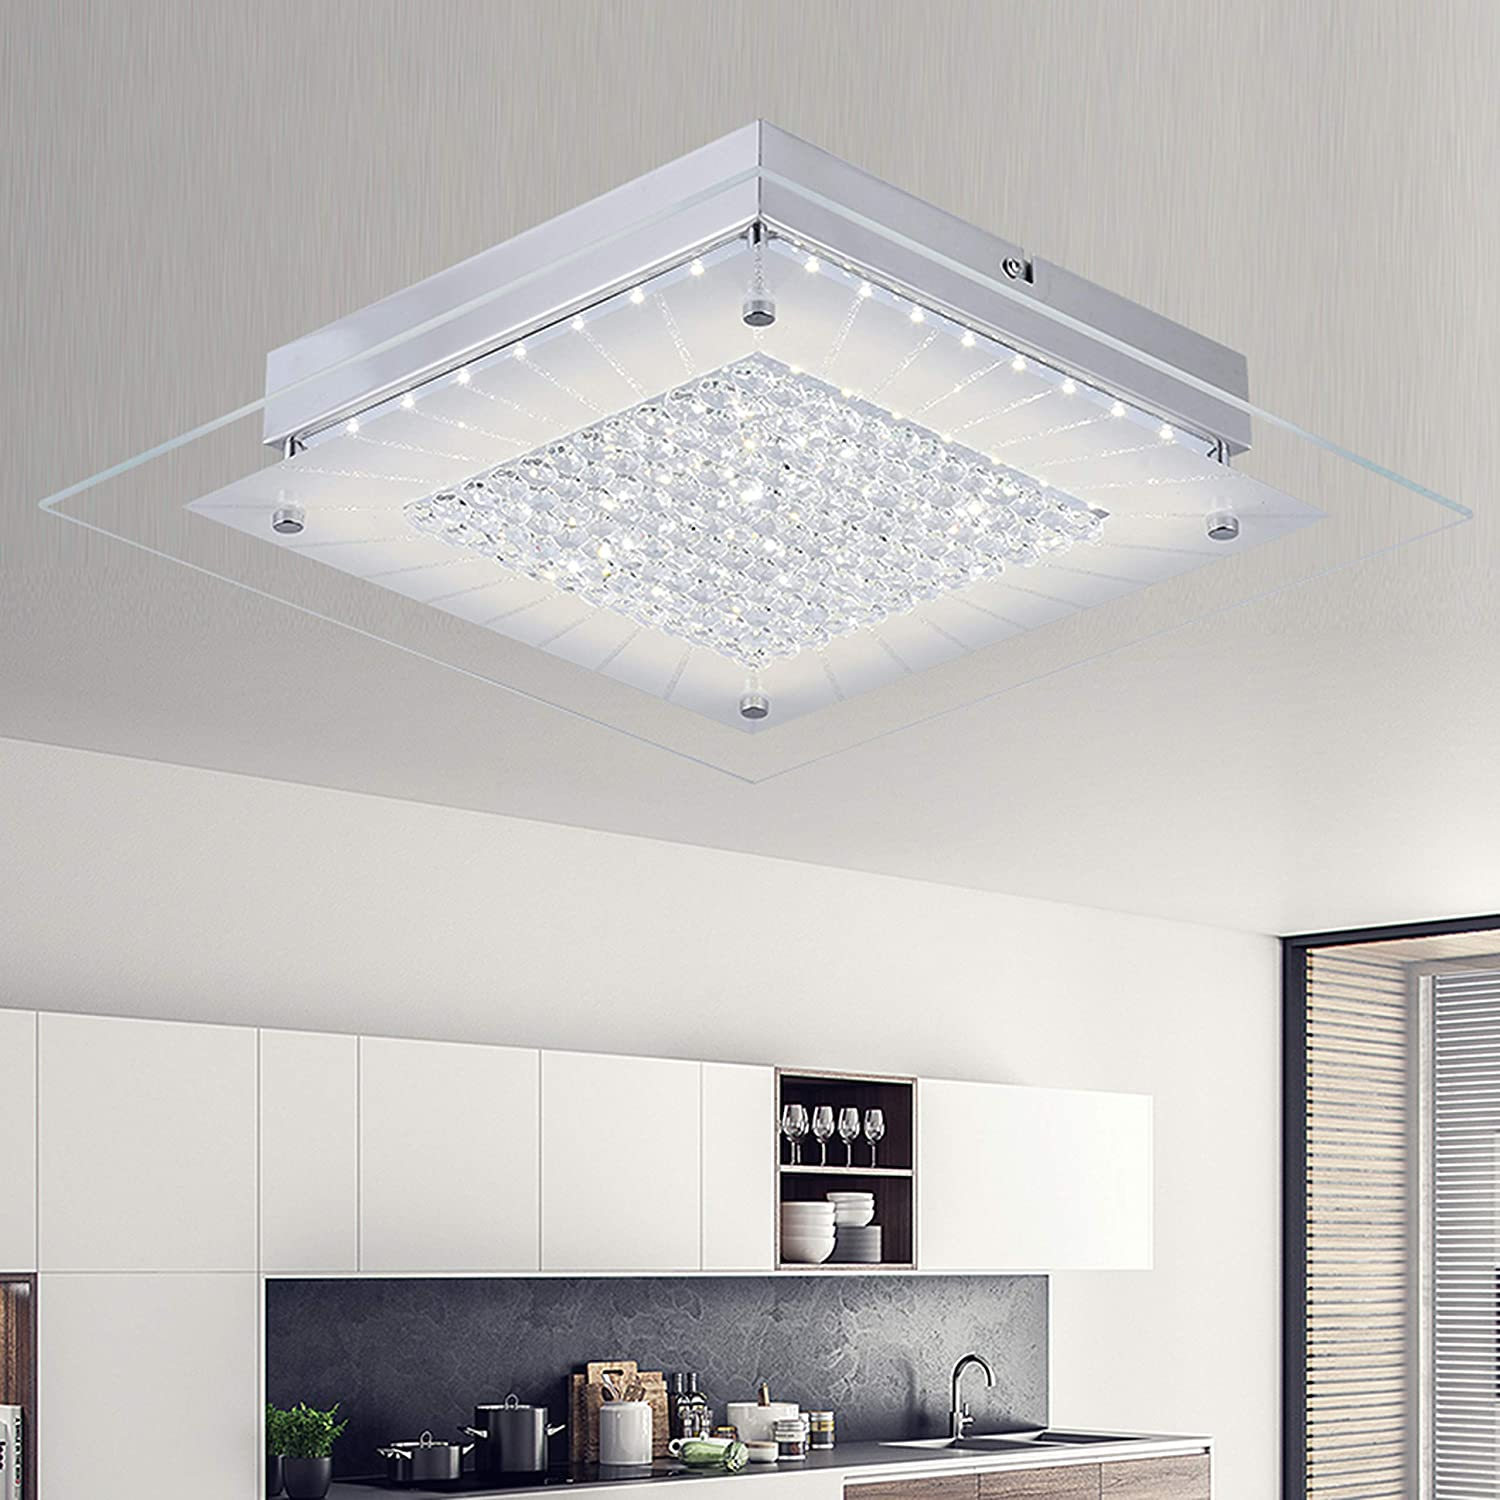 Audian crystal ceiling lights ceiling lamp close to ceiling light